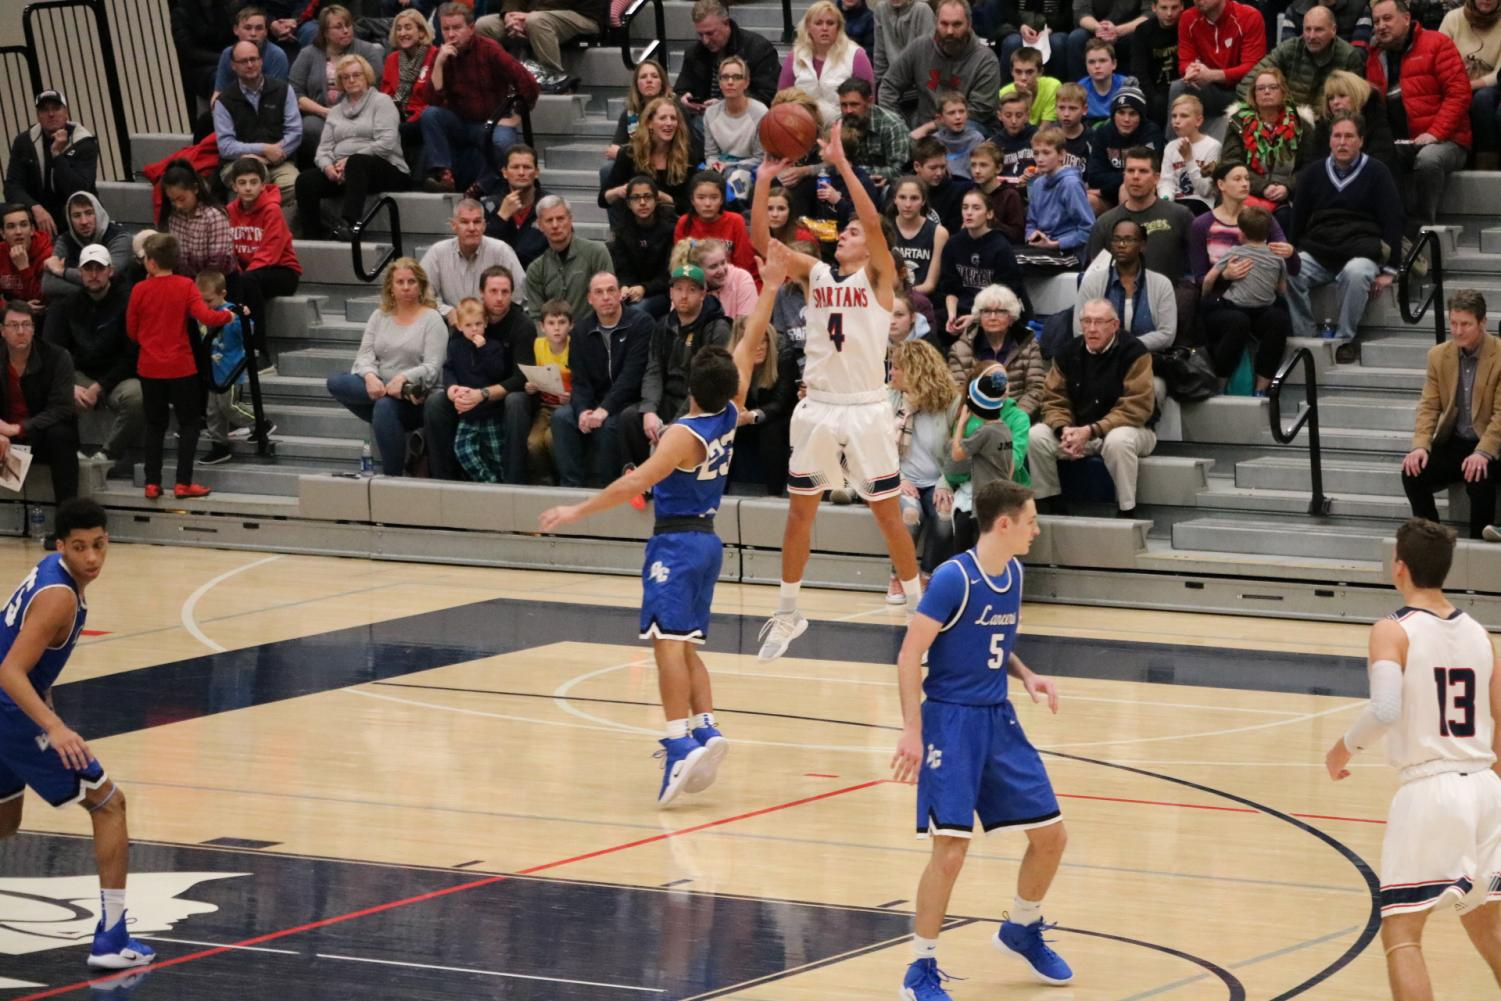 East%27s+Hayden+Doyle+%2810%29+goes+for+a+three-pointer